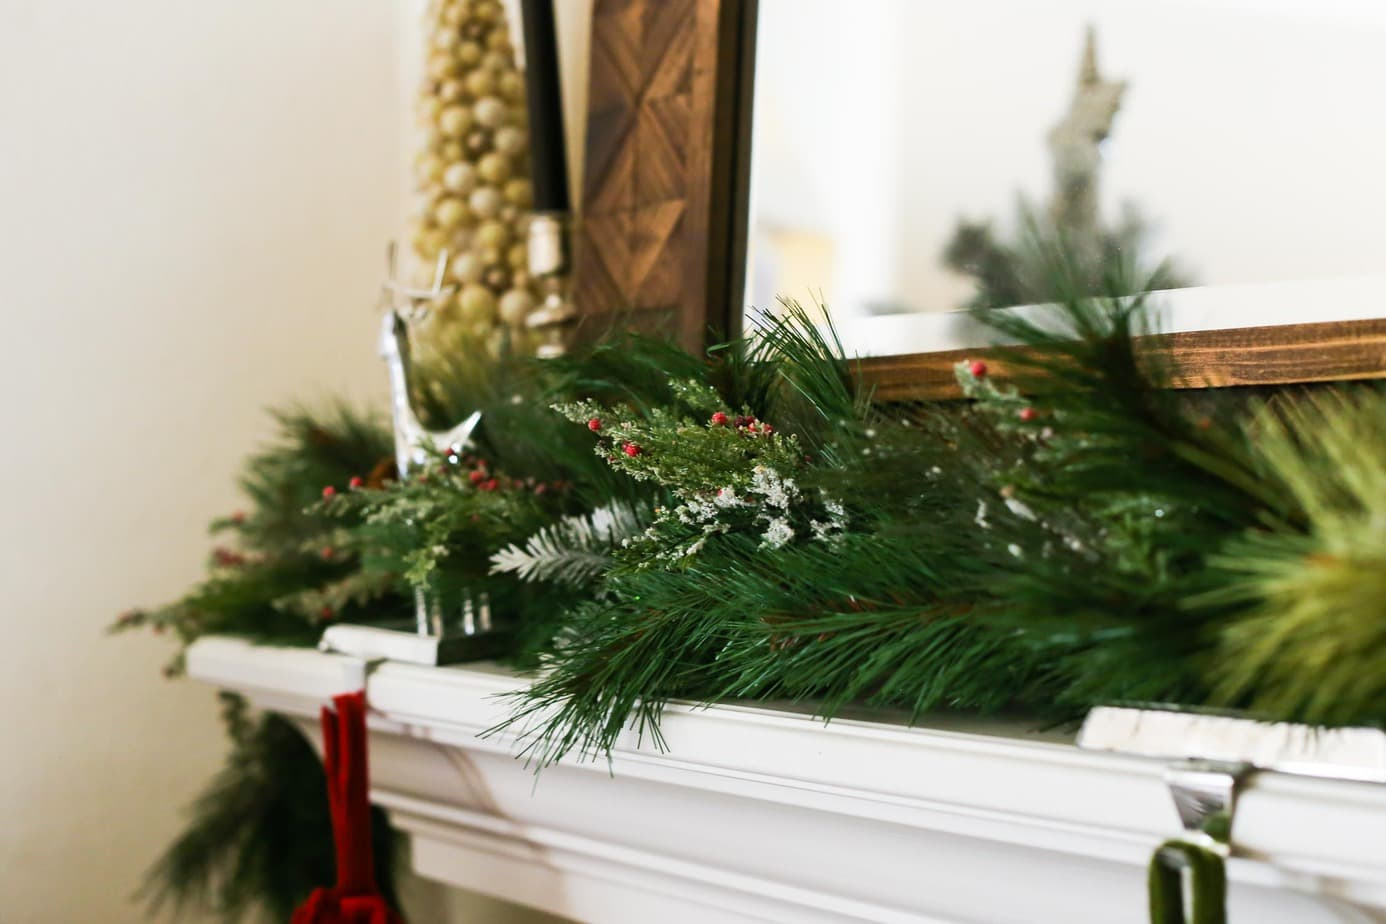 Creating a beautiful holiday mantel